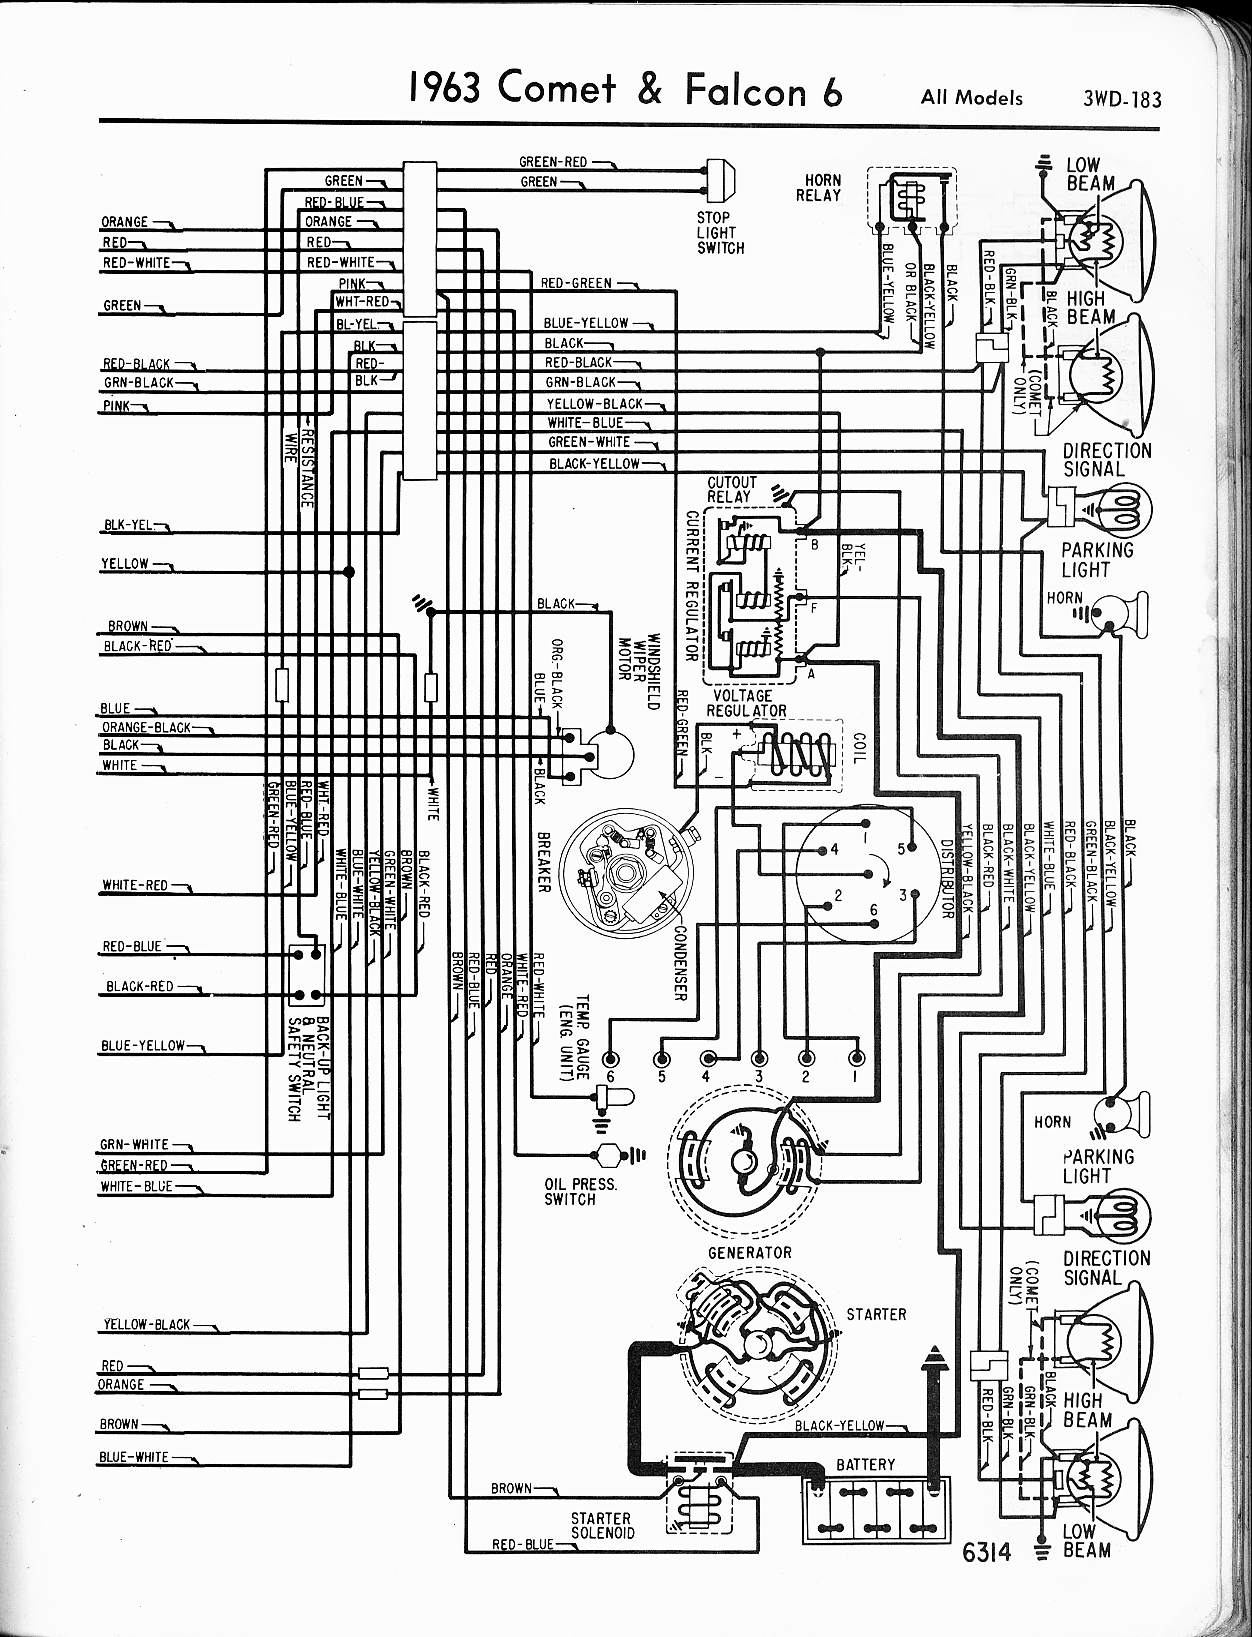 MWire5765 183 1963 ranchero wiring diagram, anyone got one? ford muscle forums 1963 mercury comet wiring diagram at fashall.co